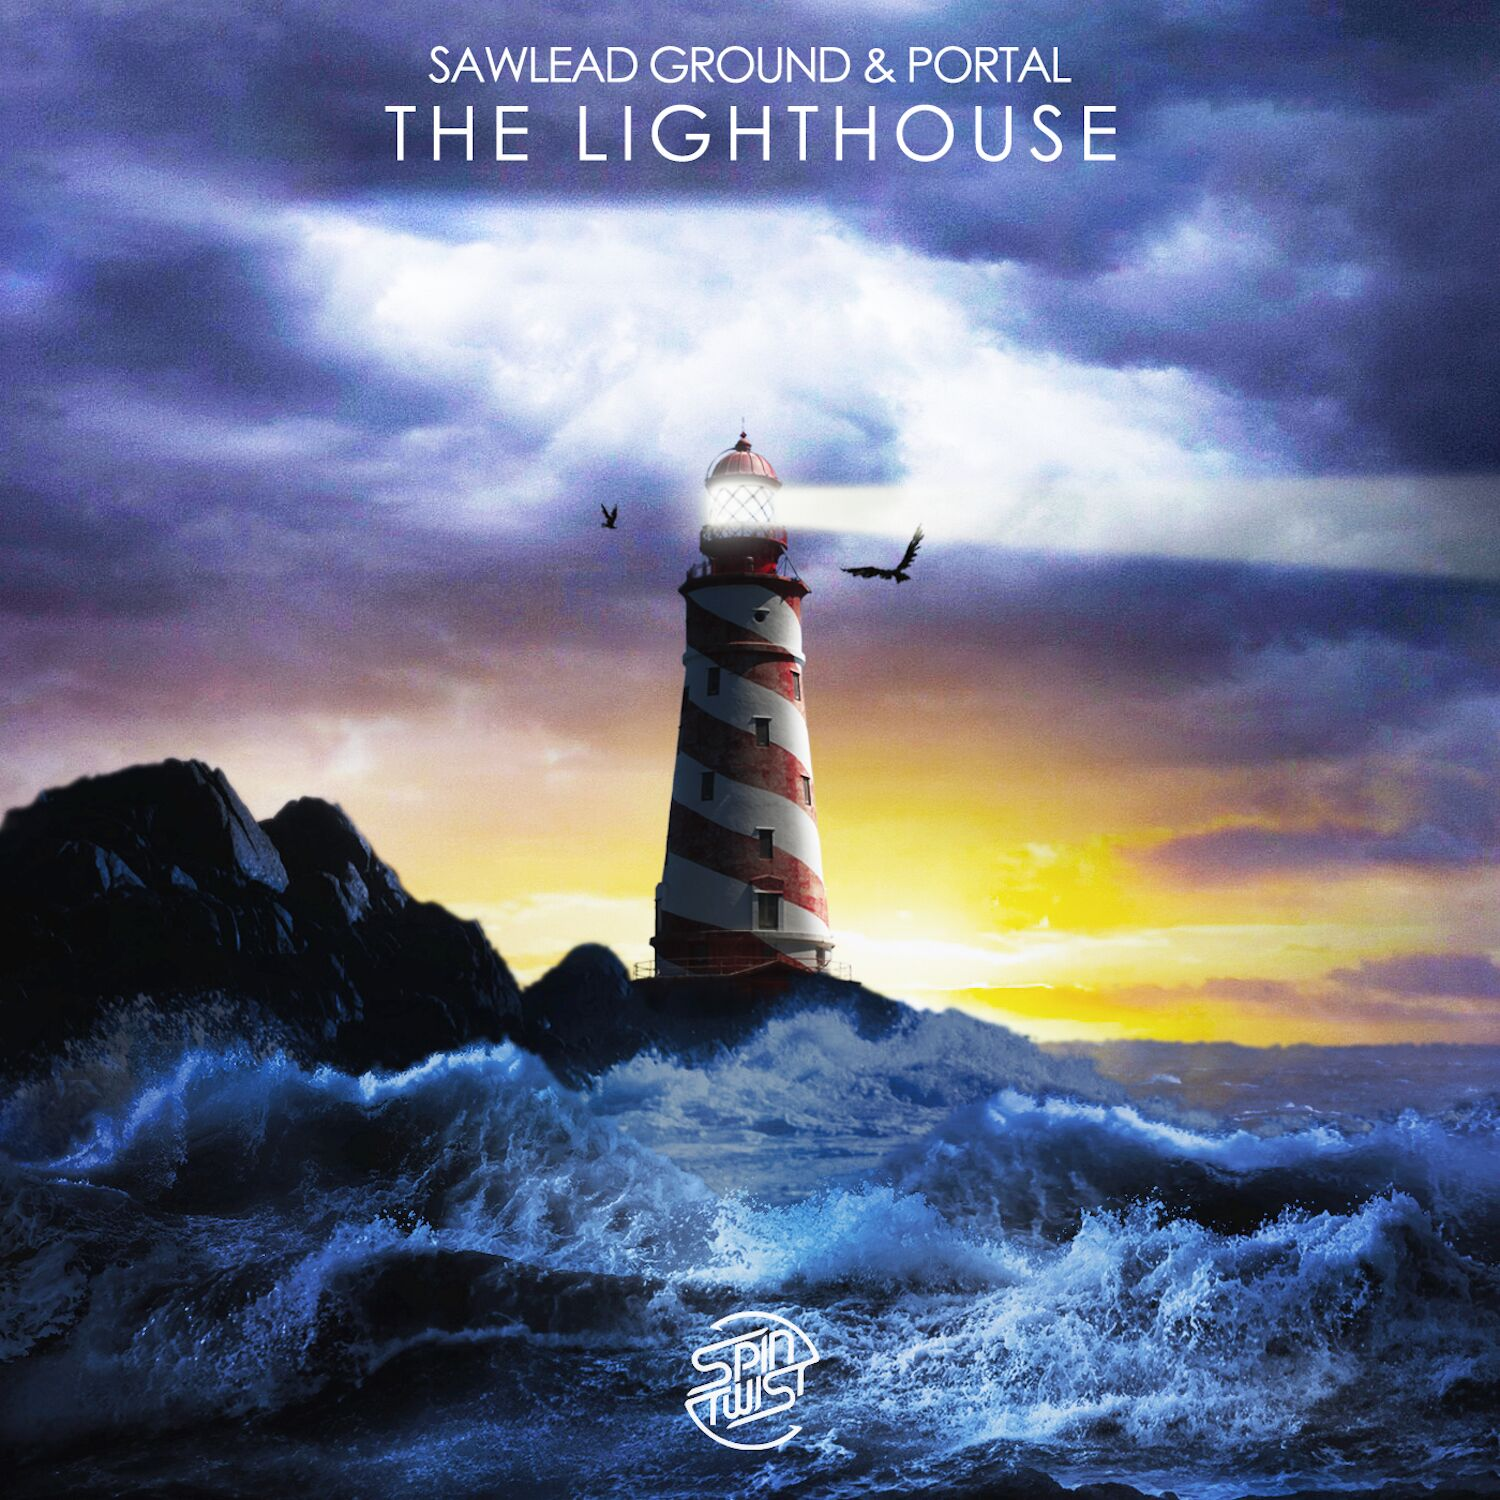 Sawlead Ground & Portal - The Lighthouse Artwork Kopie_preview.jpeg